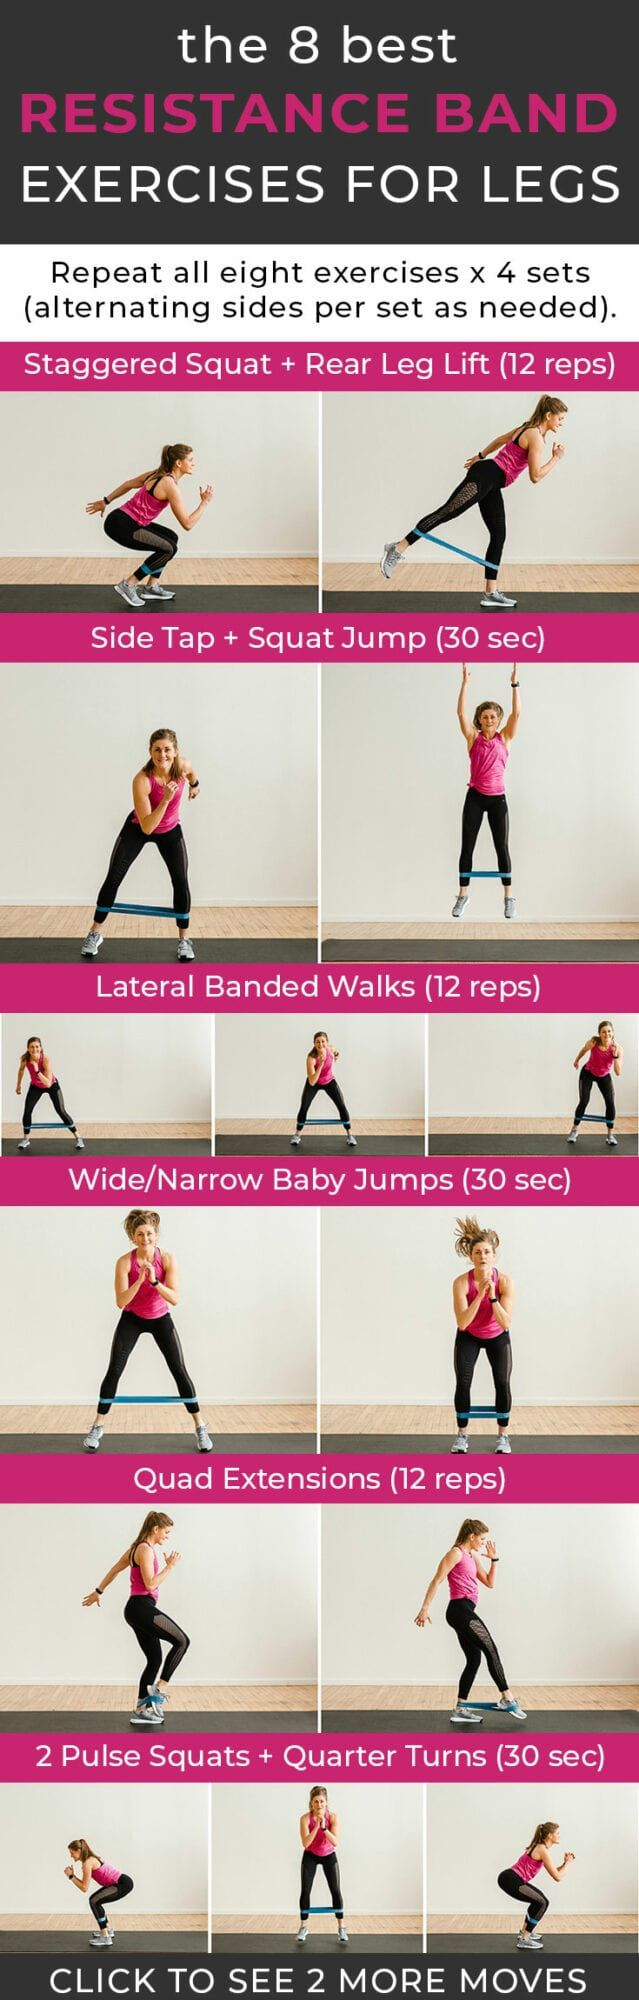 20 BEST Resistance Band Exercises for Legs Video   Nourish Move ...